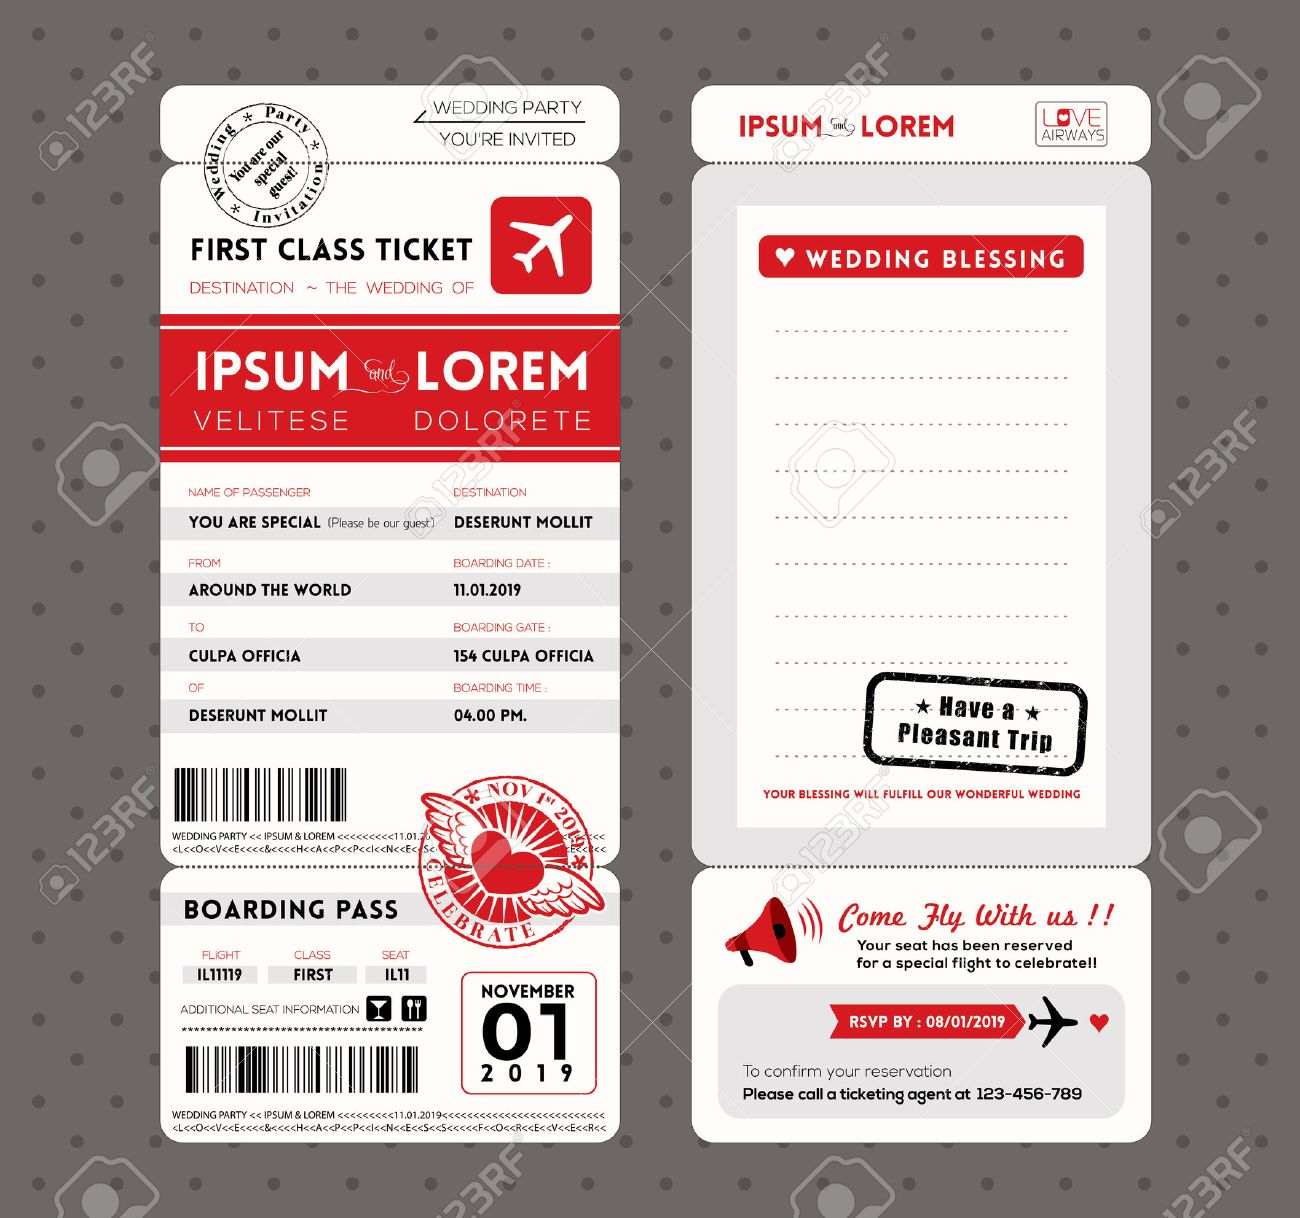 Modern boarding pass ticket wedding invitation graphic design modern boarding pass ticket wedding invitation graphic design vector template stock vector 23654639 stopboris Gallery